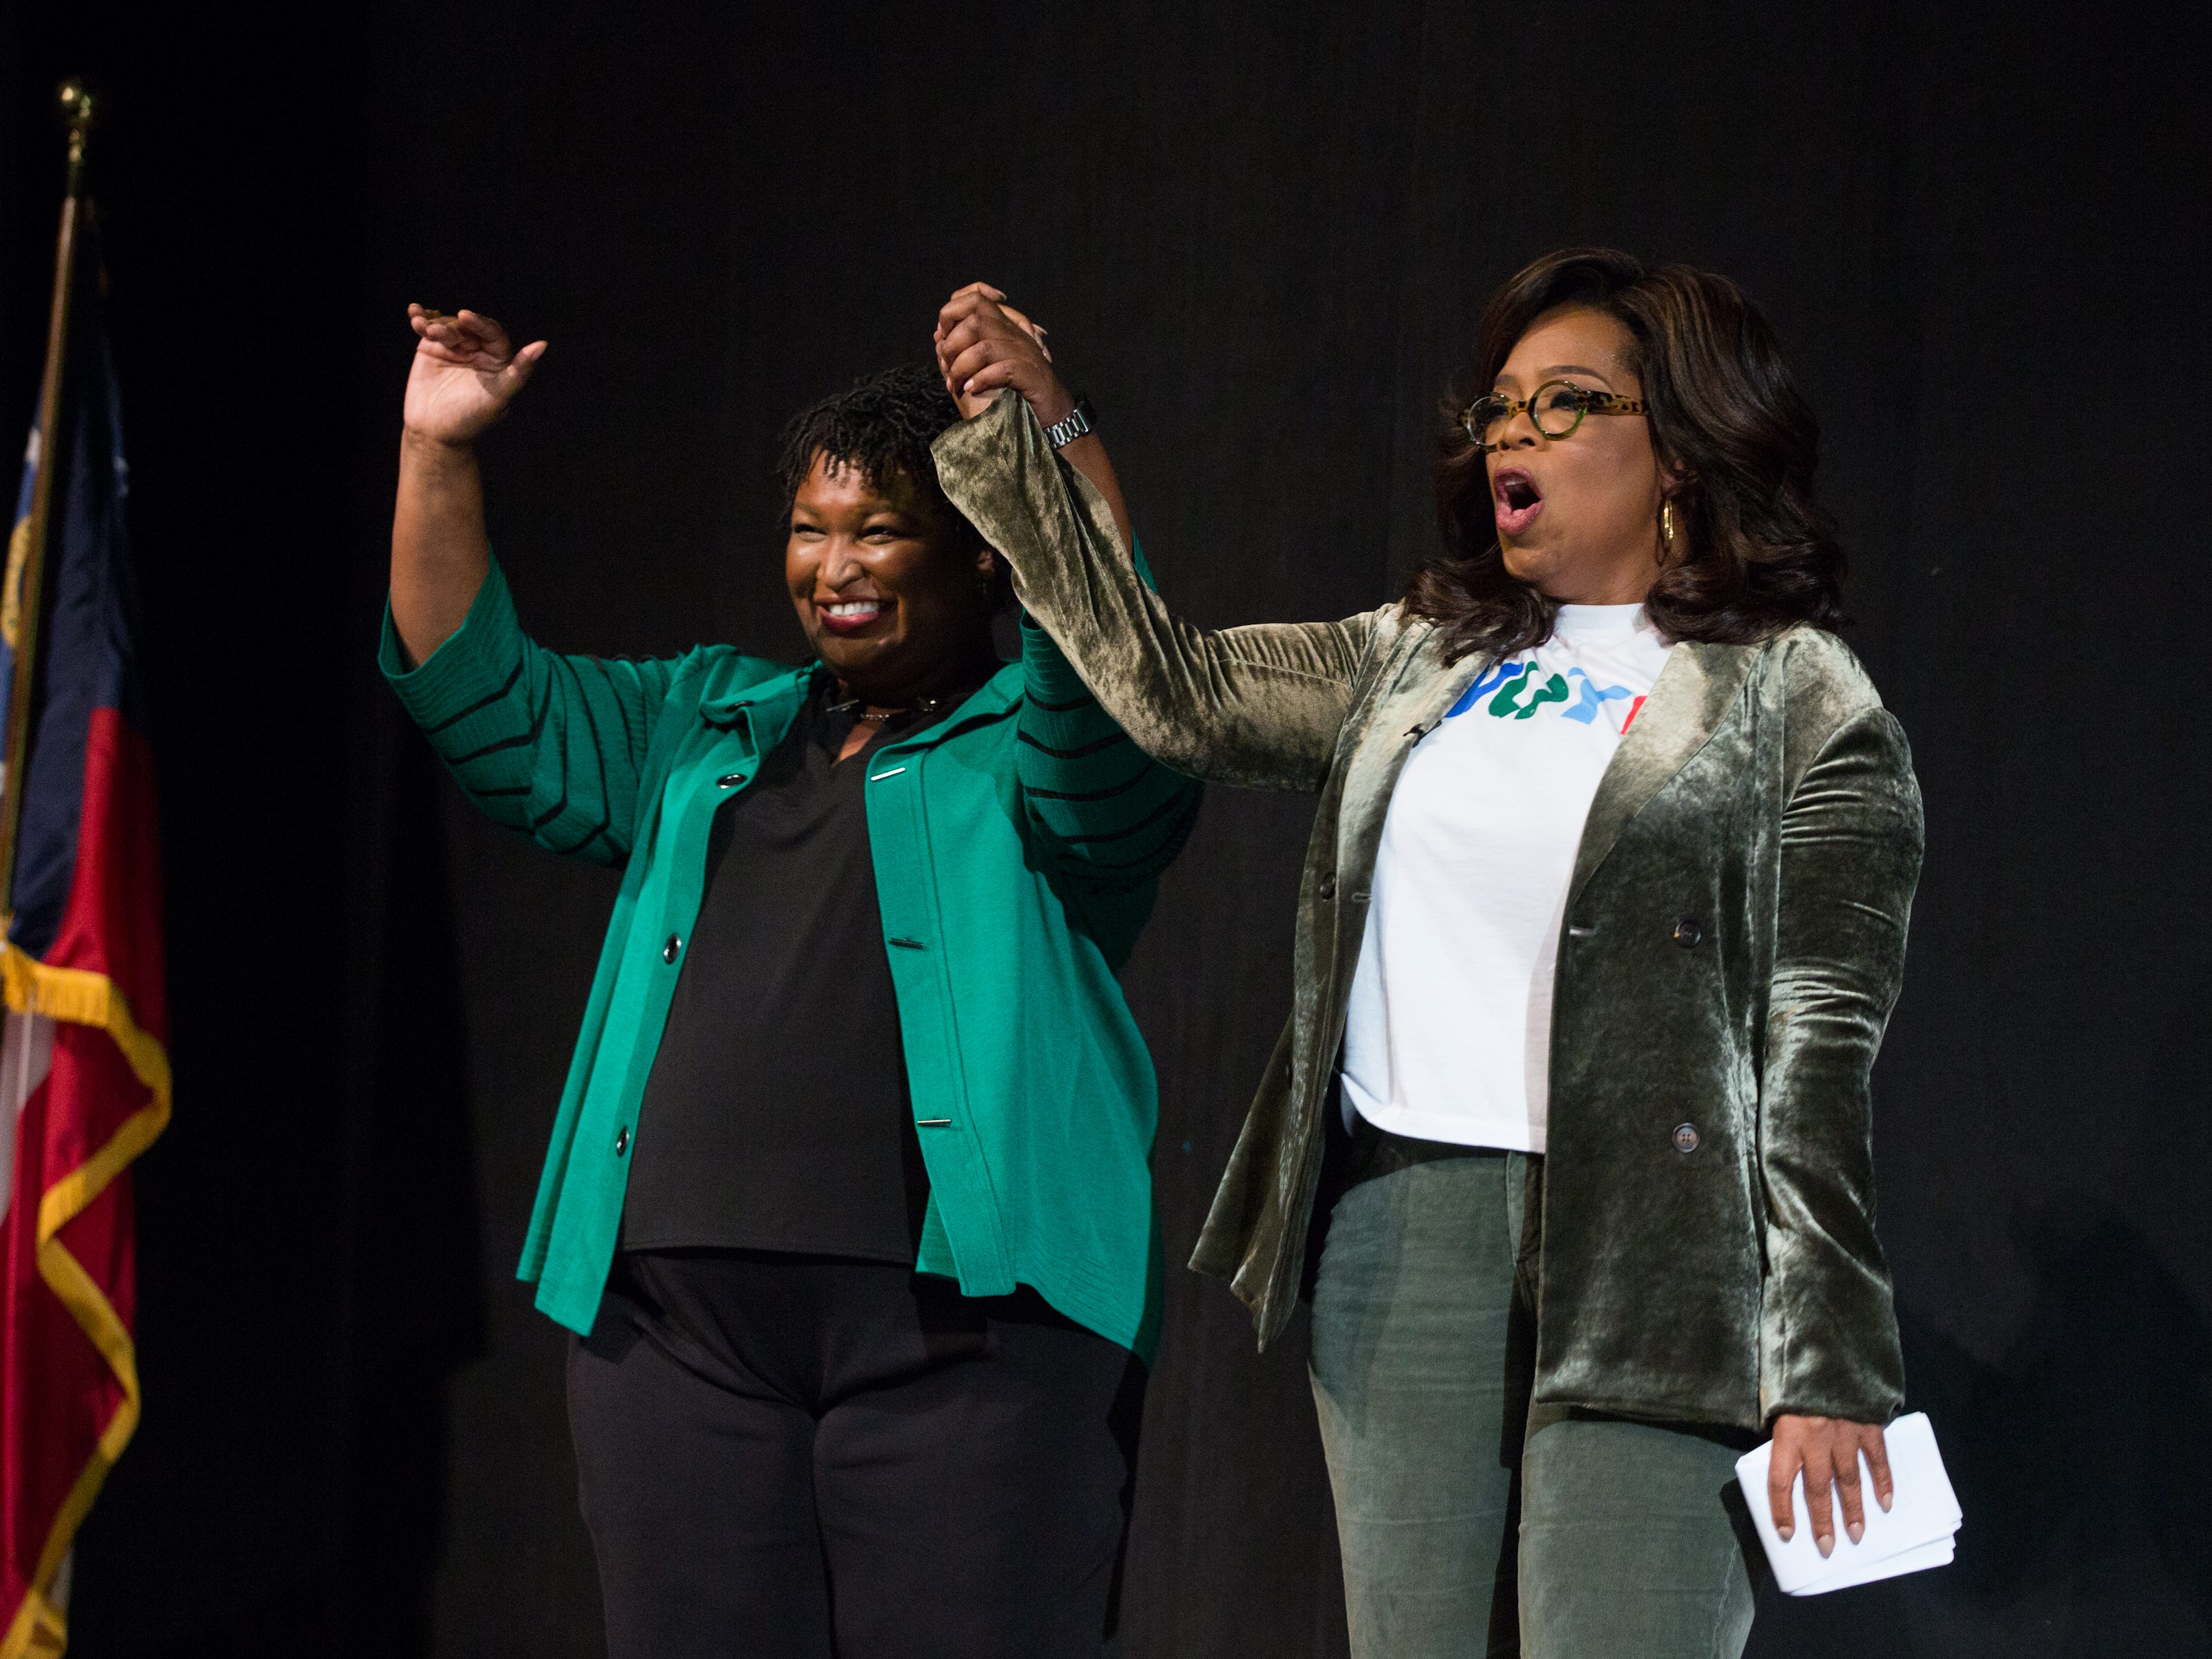 Oprah, Beyonce and Taylor: They 'lost' in midterms, so what about celebrity political pull in 2020?